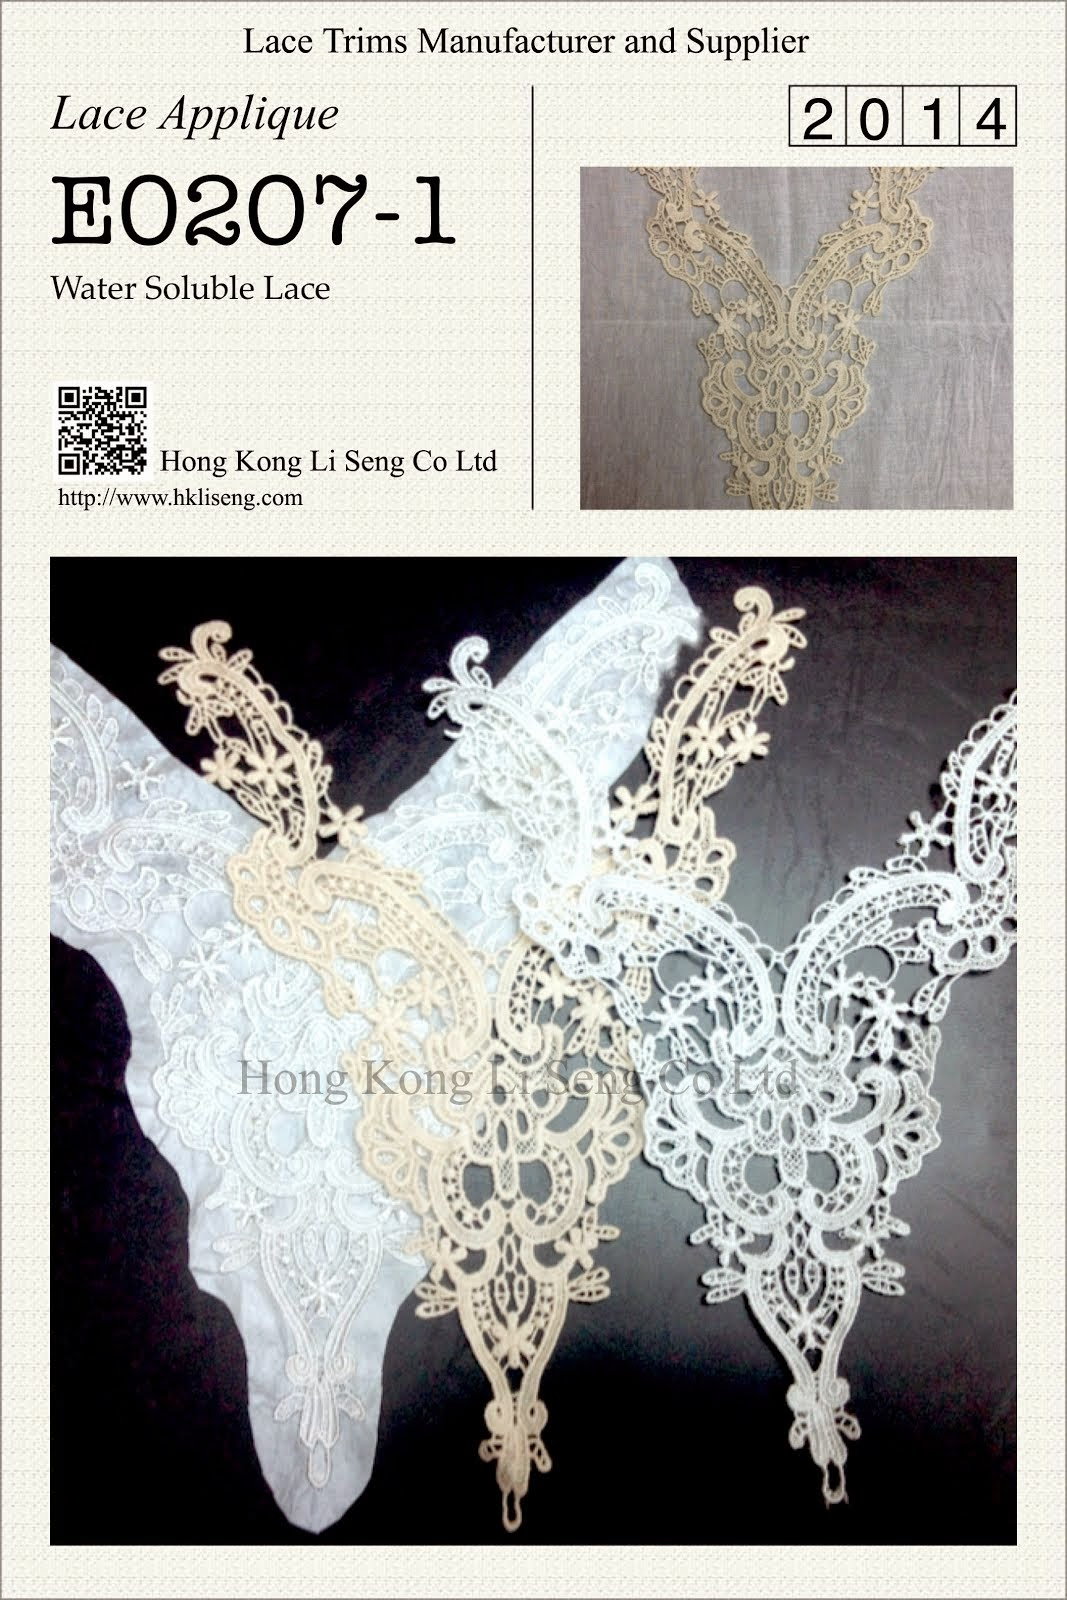 Are you looking for Lace Trims Manufacturer for your New Style Fashion Apparel - Coming Season